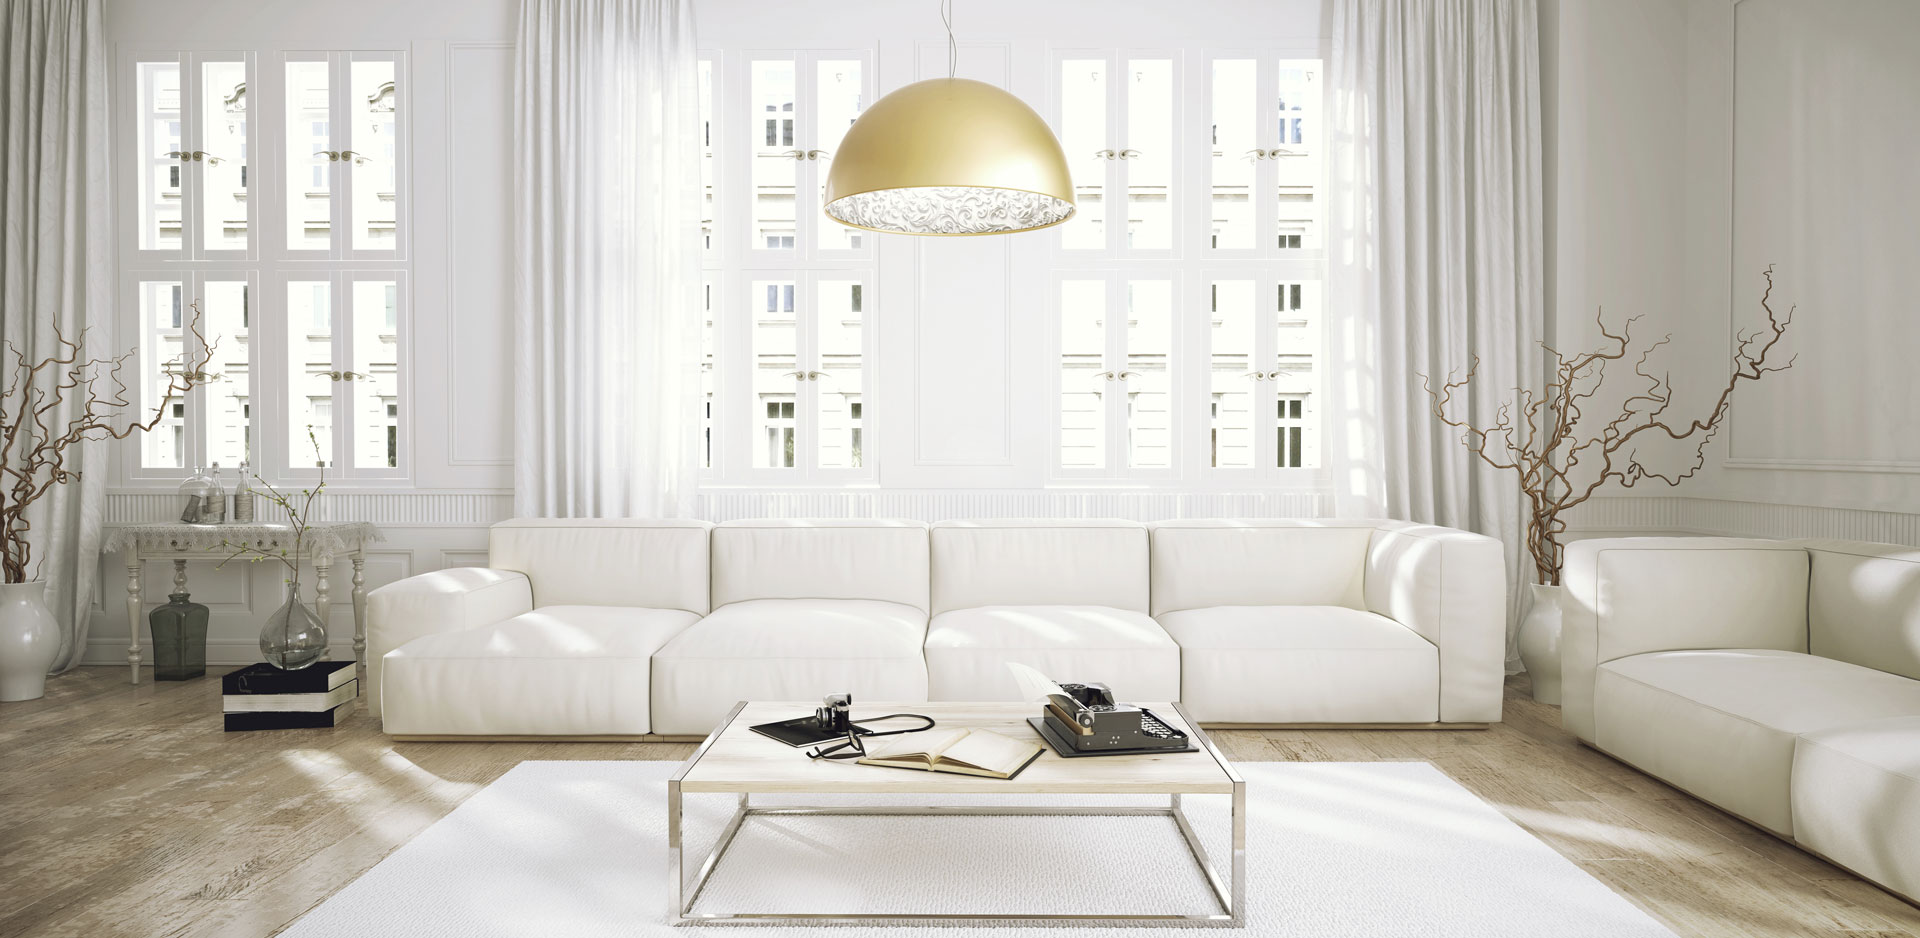 Clean white living room space apartment